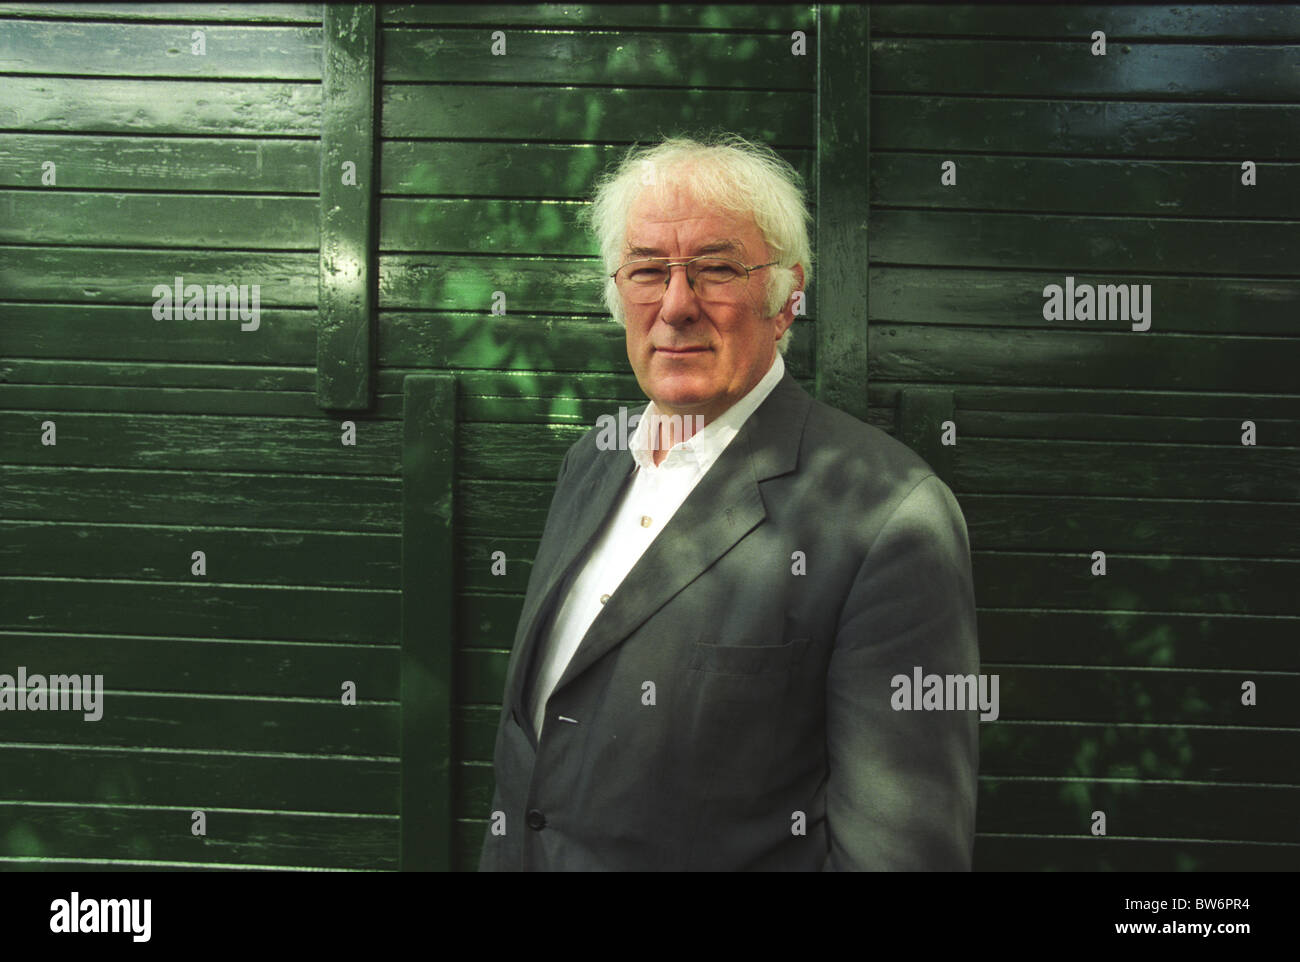 Irish author, writer, lecturer and poet Seamus Heaney. Winner of Nobel Prize for Literature. - Stock Image